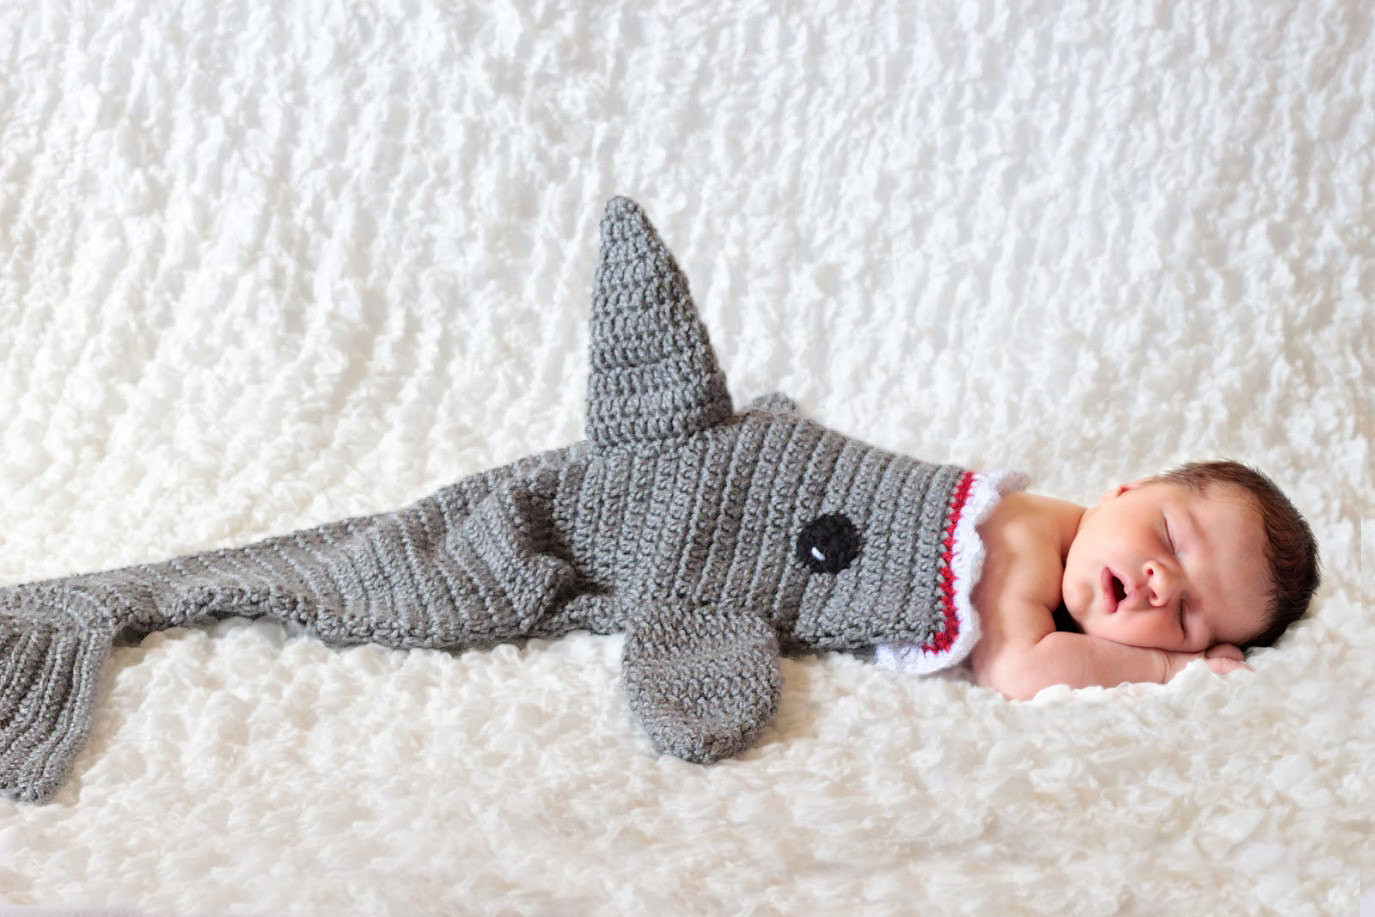 Shark Blanket Pattern Beautiful Shark Blanket Cocoon Crochet Shark Blanket Shark Baby Of New 46 Pics Shark Blanket Pattern